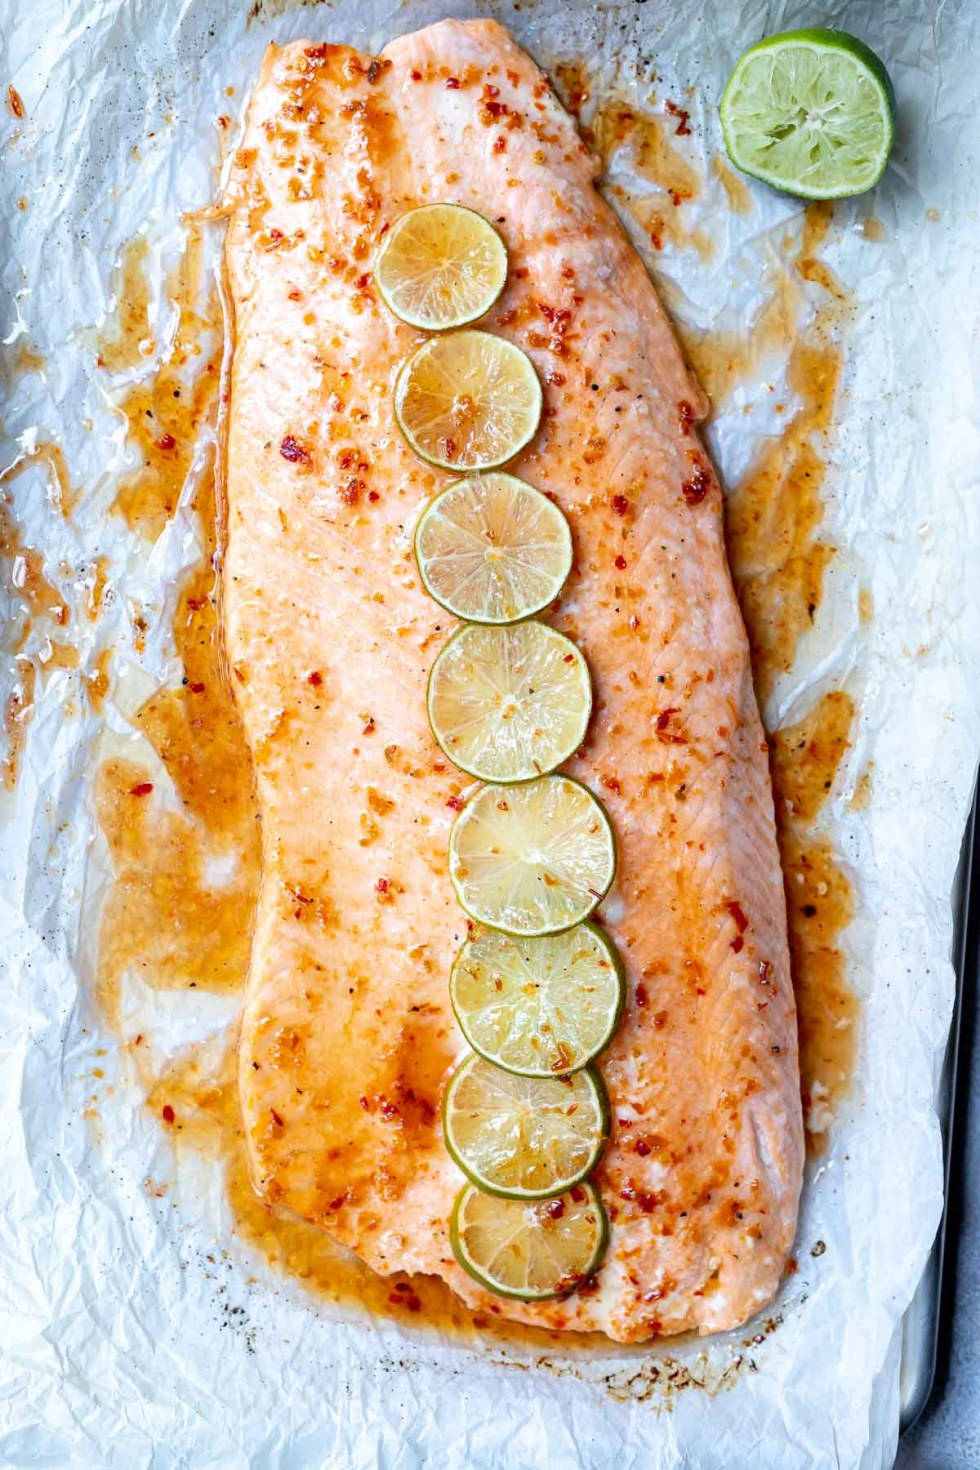 chili lime salmon on parchment paper